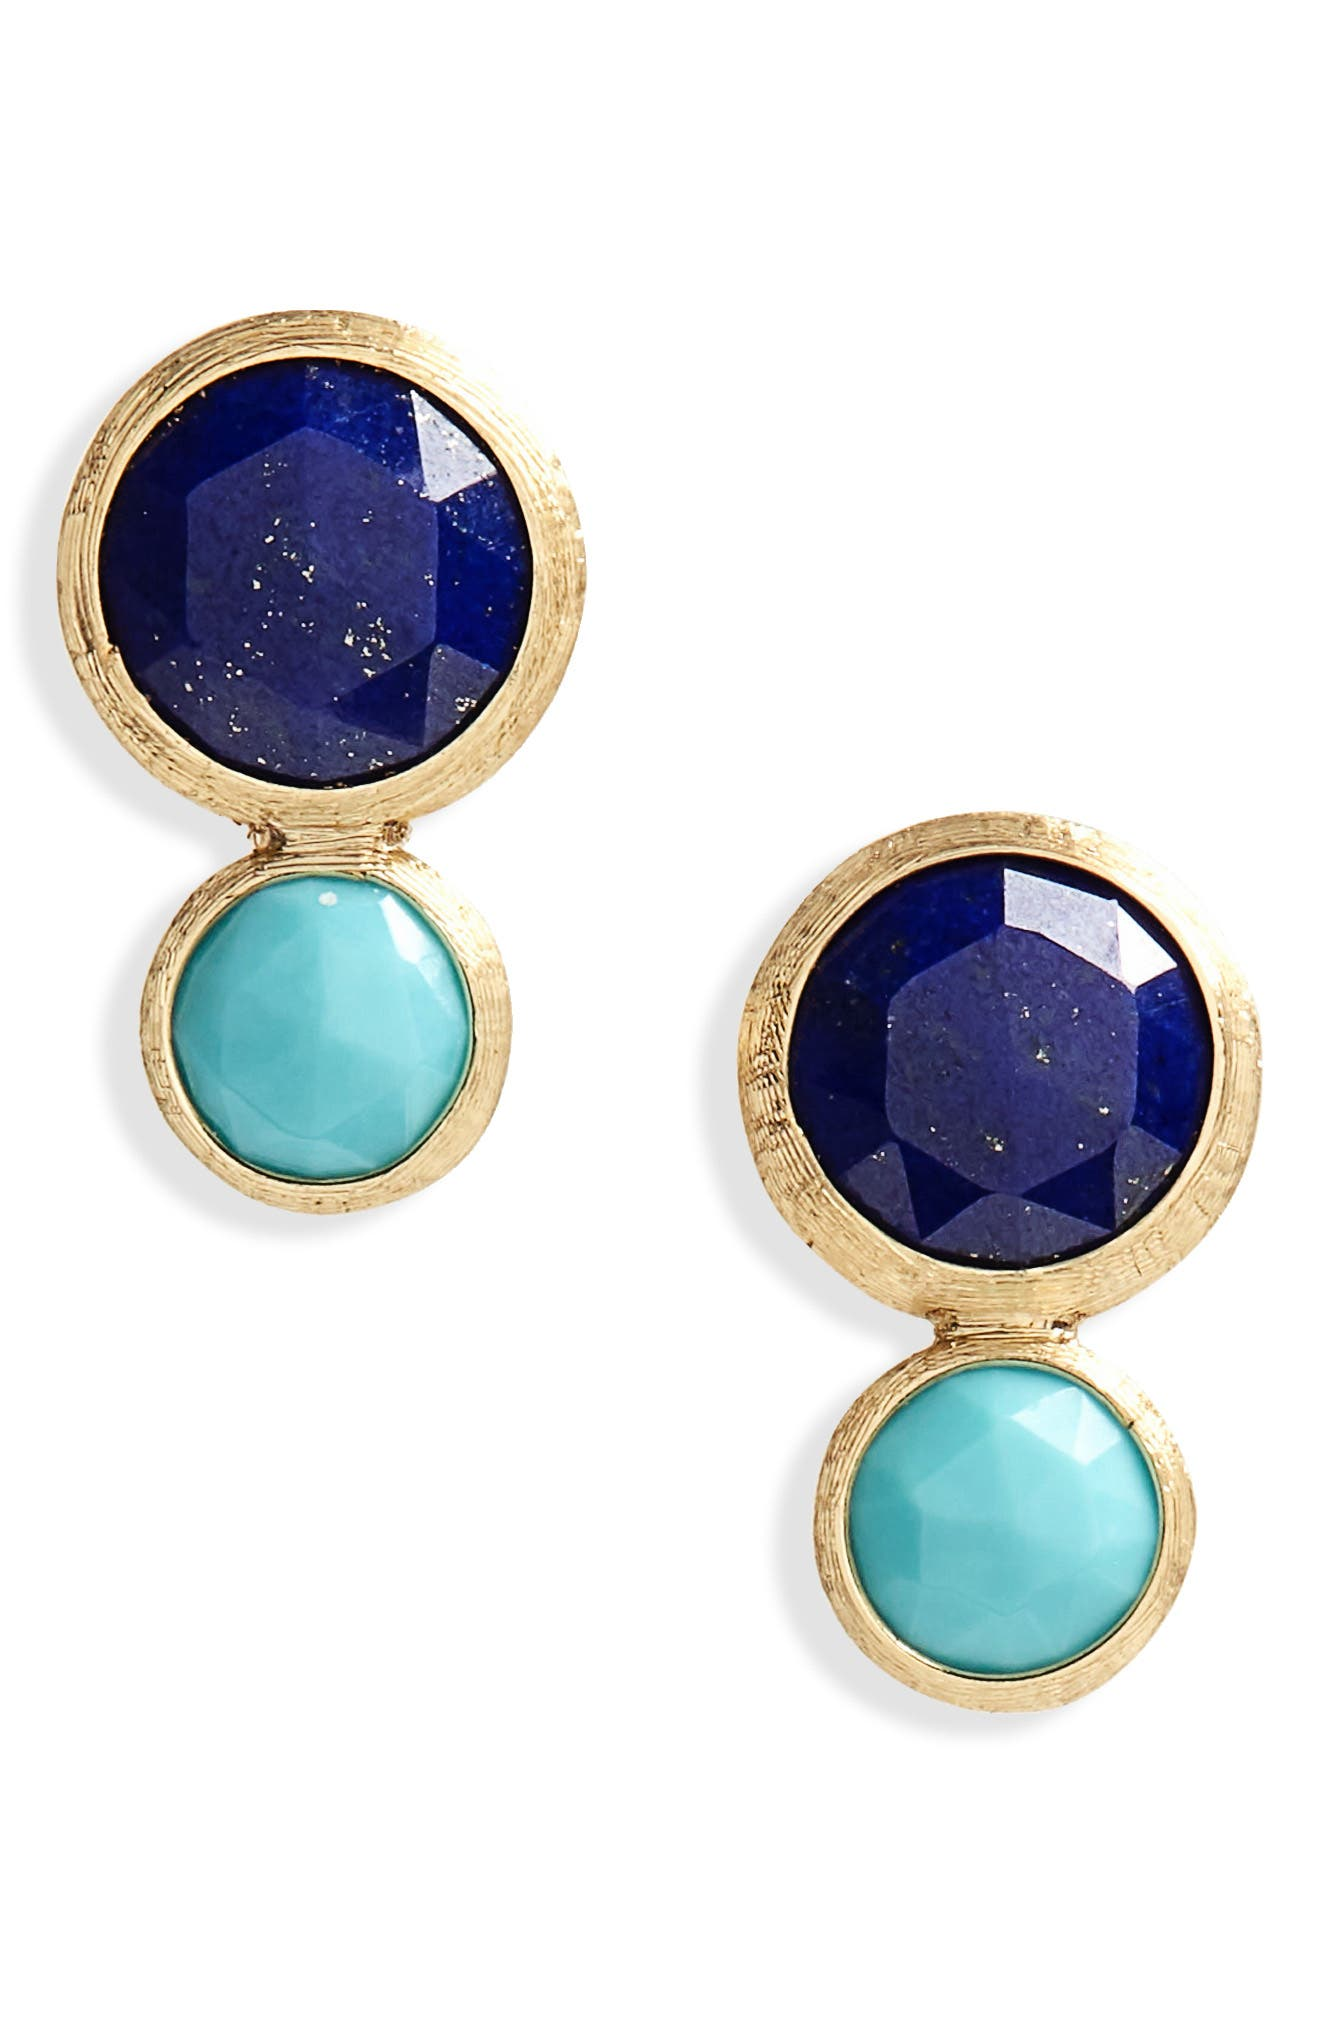 Jaipur Lapis & Turquoise Stud Earrings,                         Main,                         color, YELLOW GOLD LAPIS/ TURQUOISE